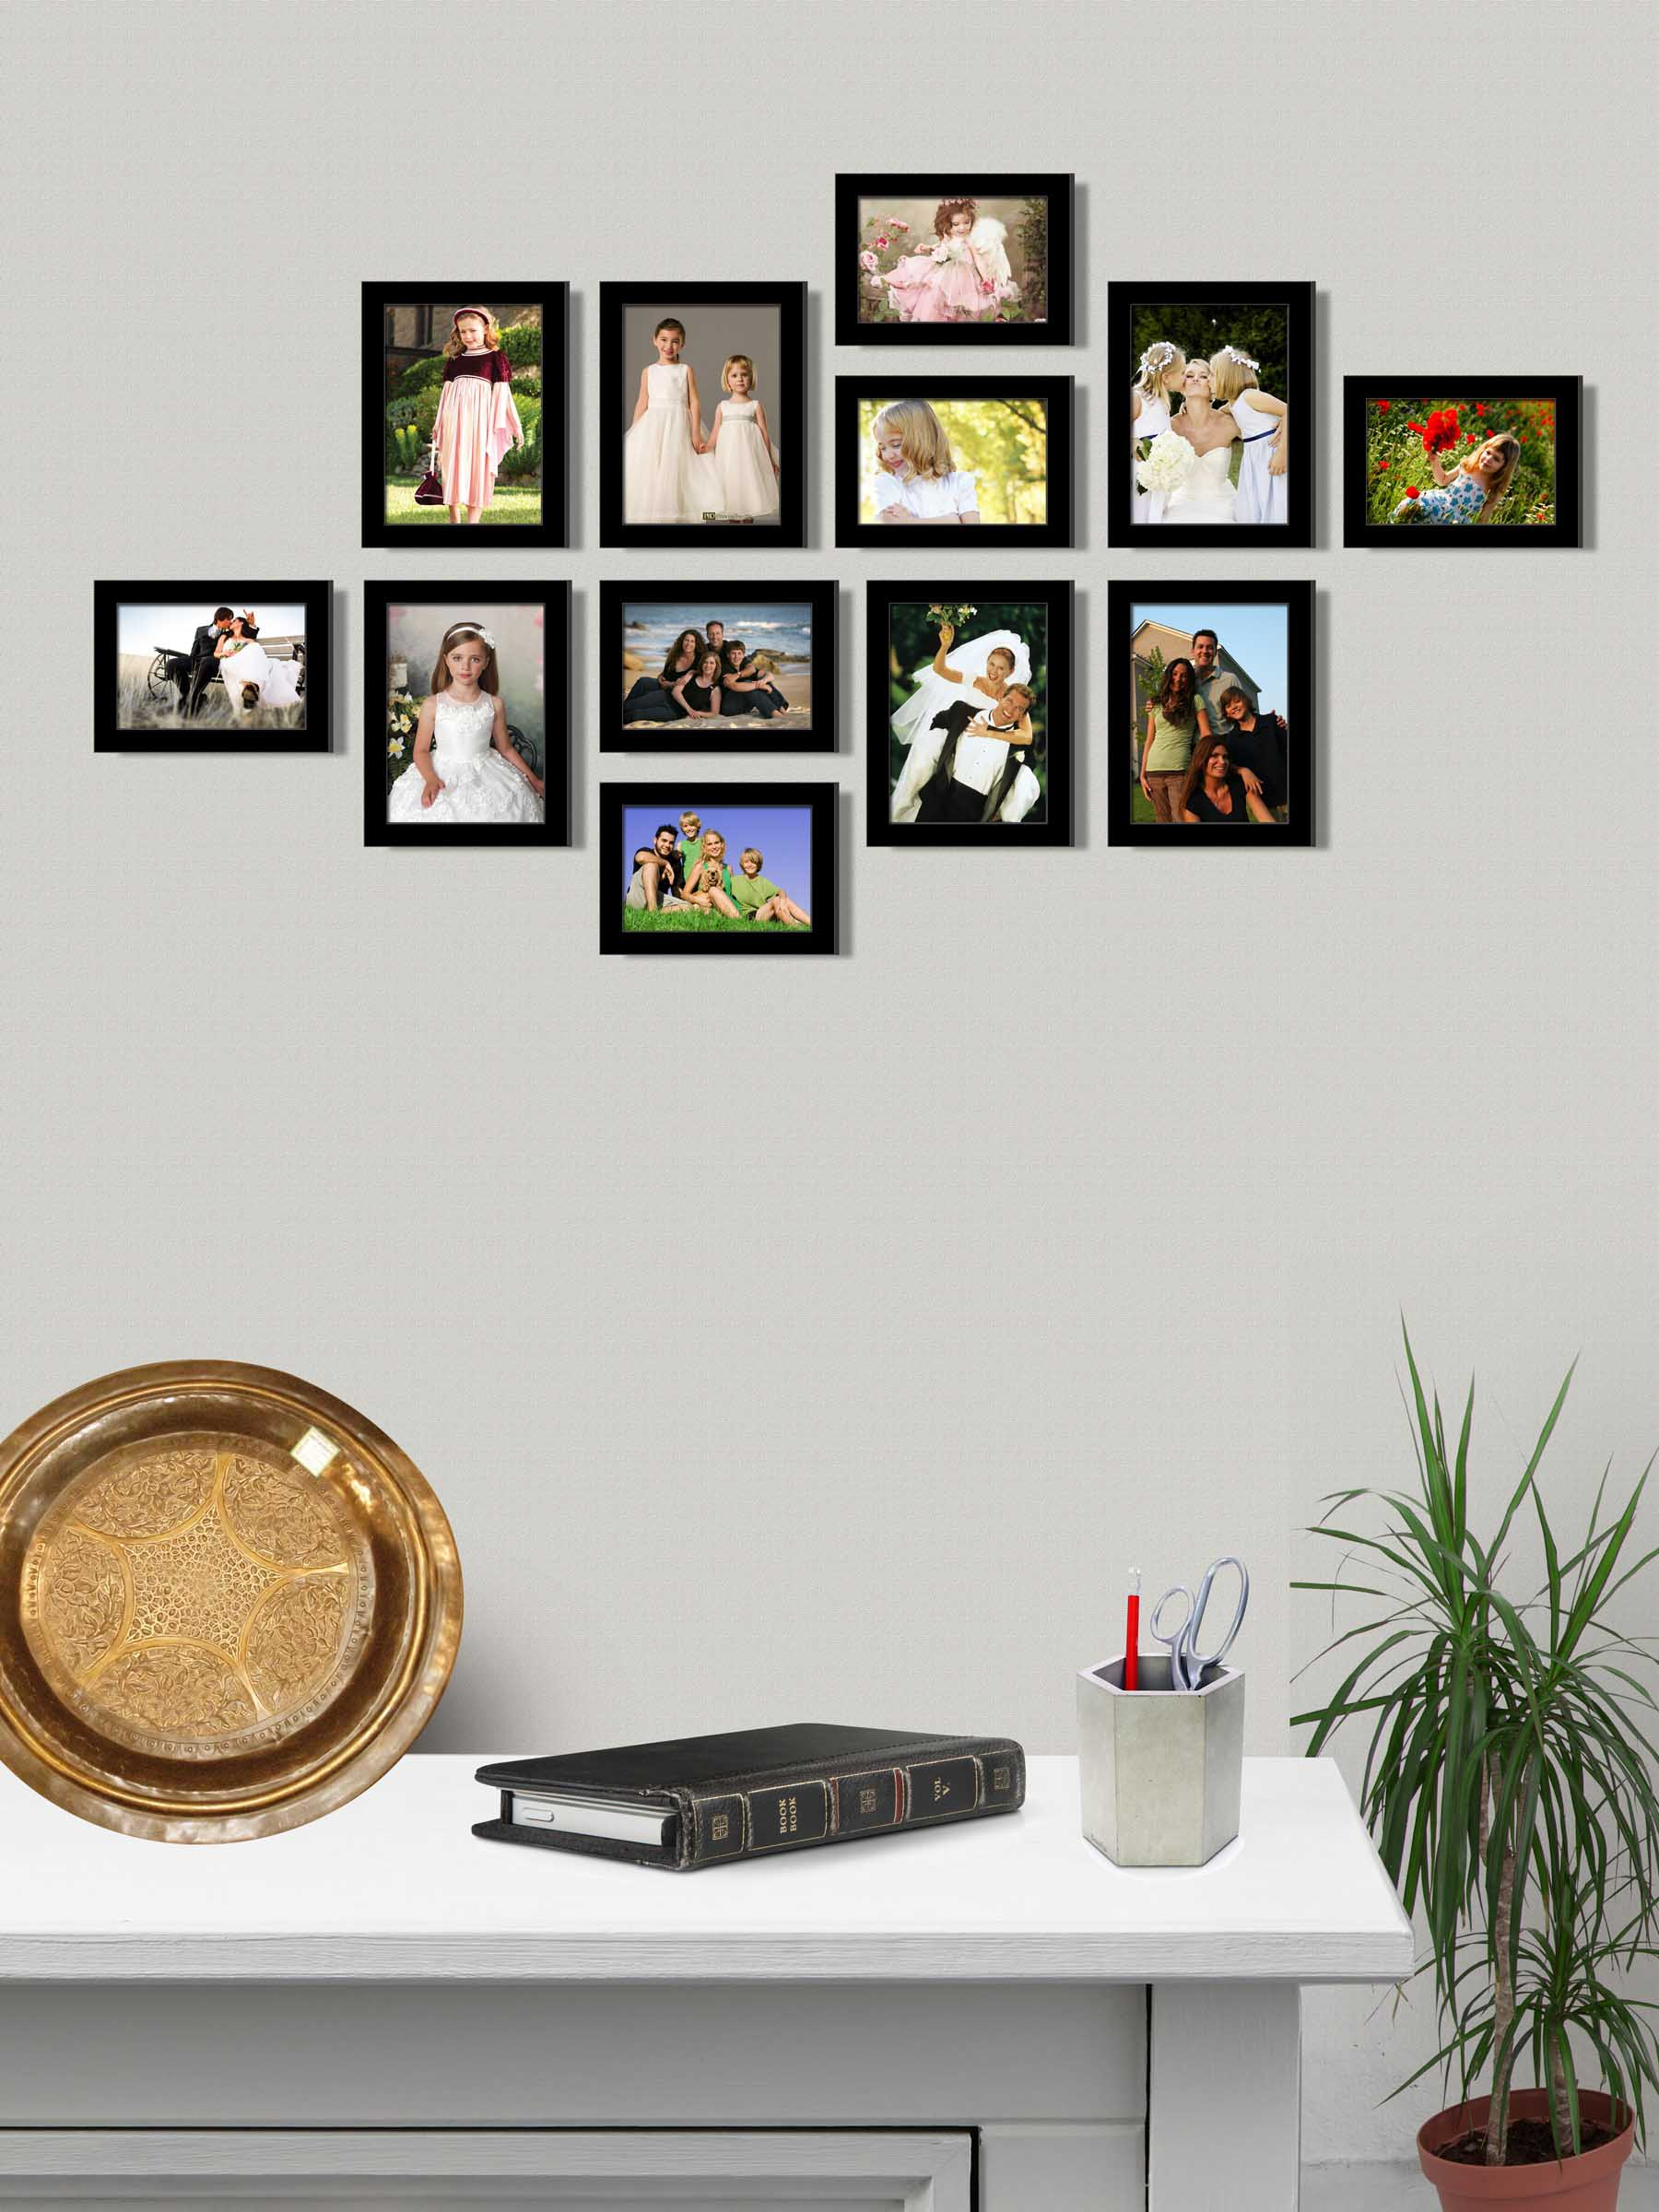 Photo Frames - Buy Photo Frame Online in India | Myntra